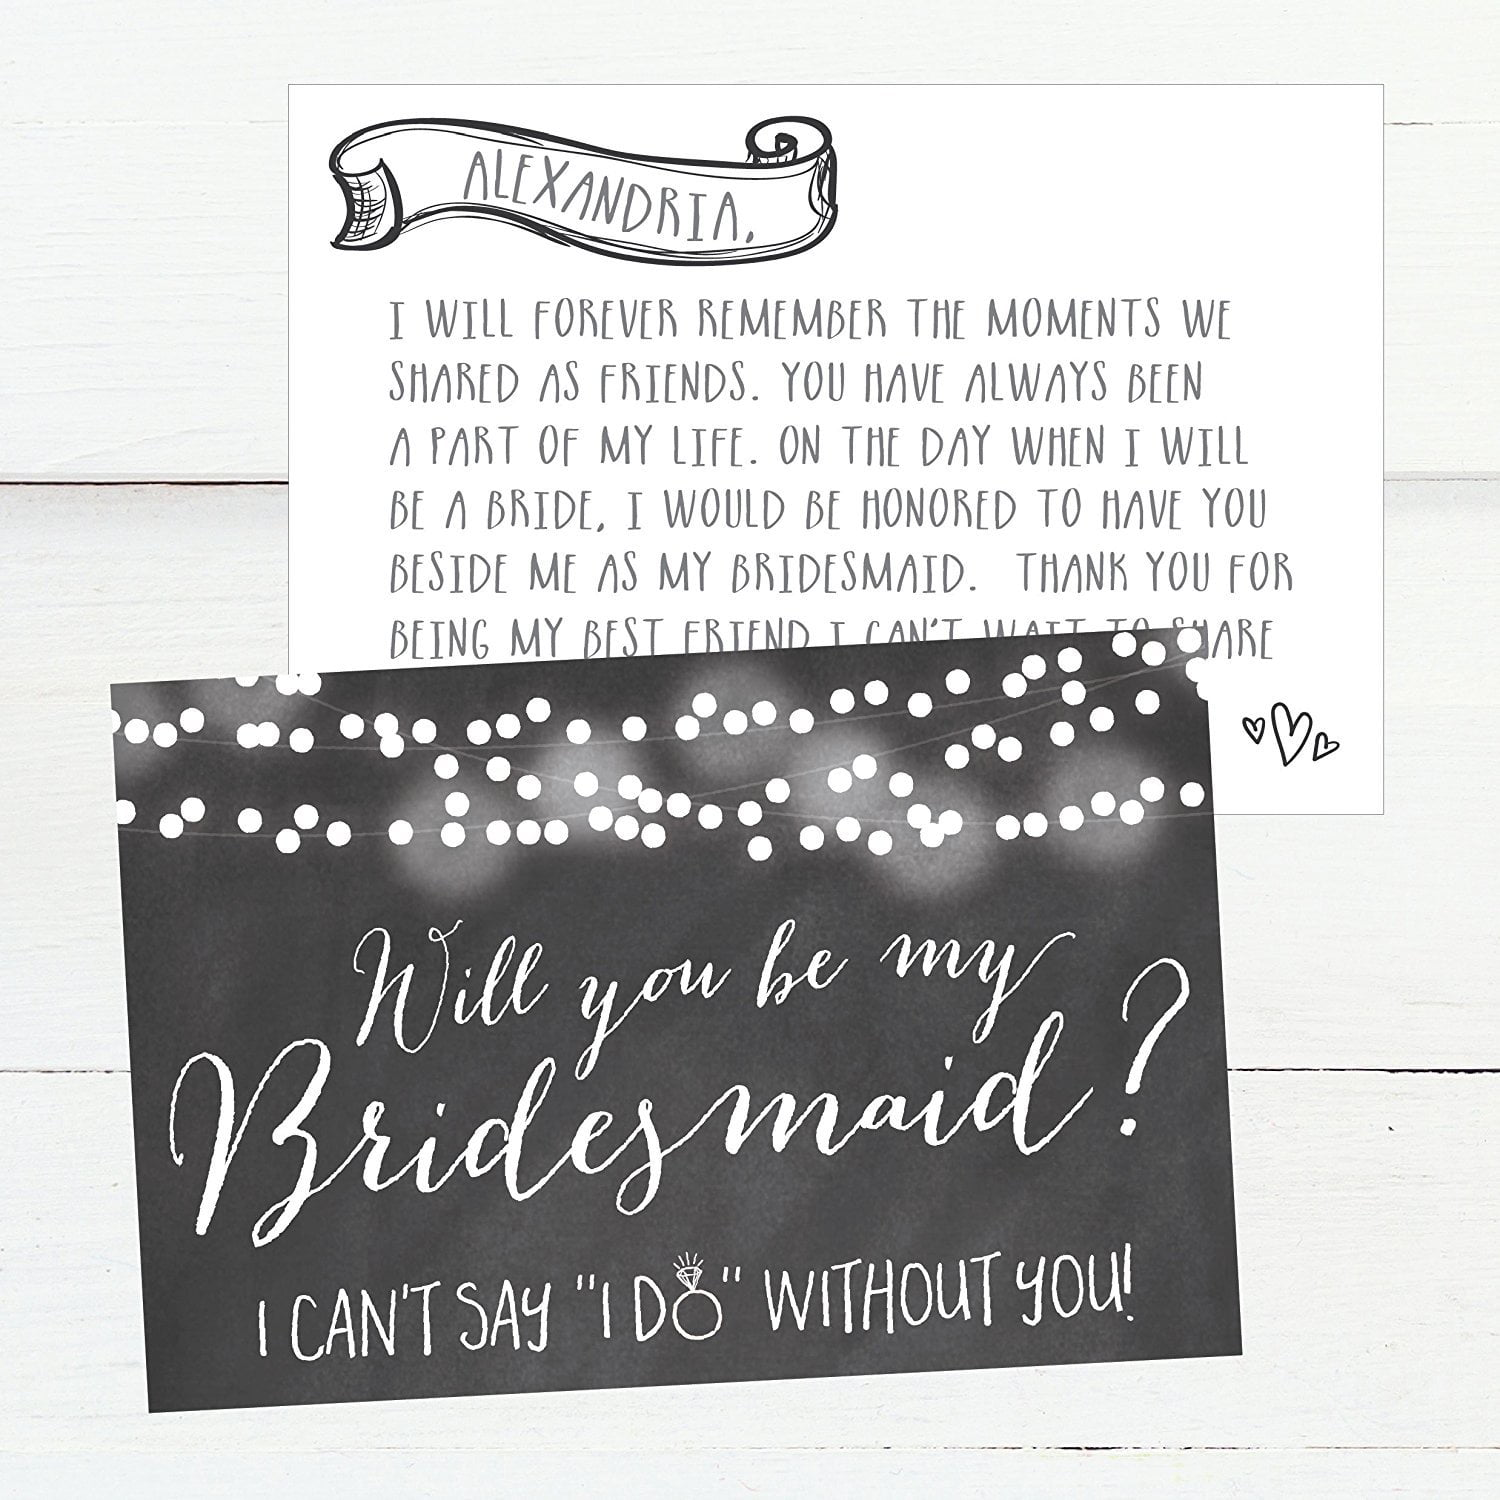 We cant MAKE IT OFFICIAL without you will you be my junior bridesmaid card bridal bridesmaid proposal card kraft wedding make it official